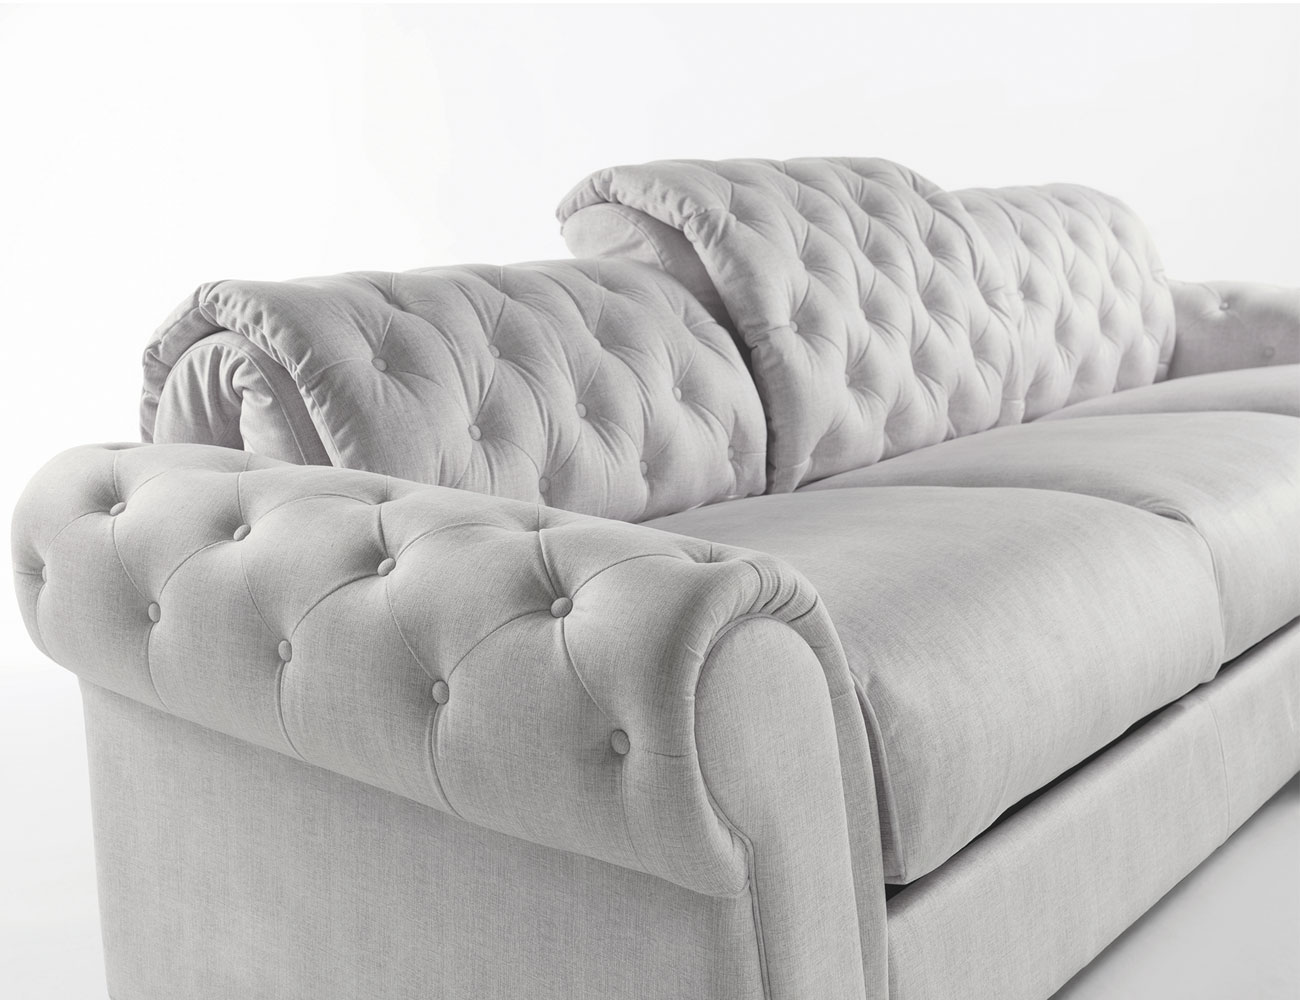 Sofa chaiselongue gran lujo decorativo capitone blanco tela 117